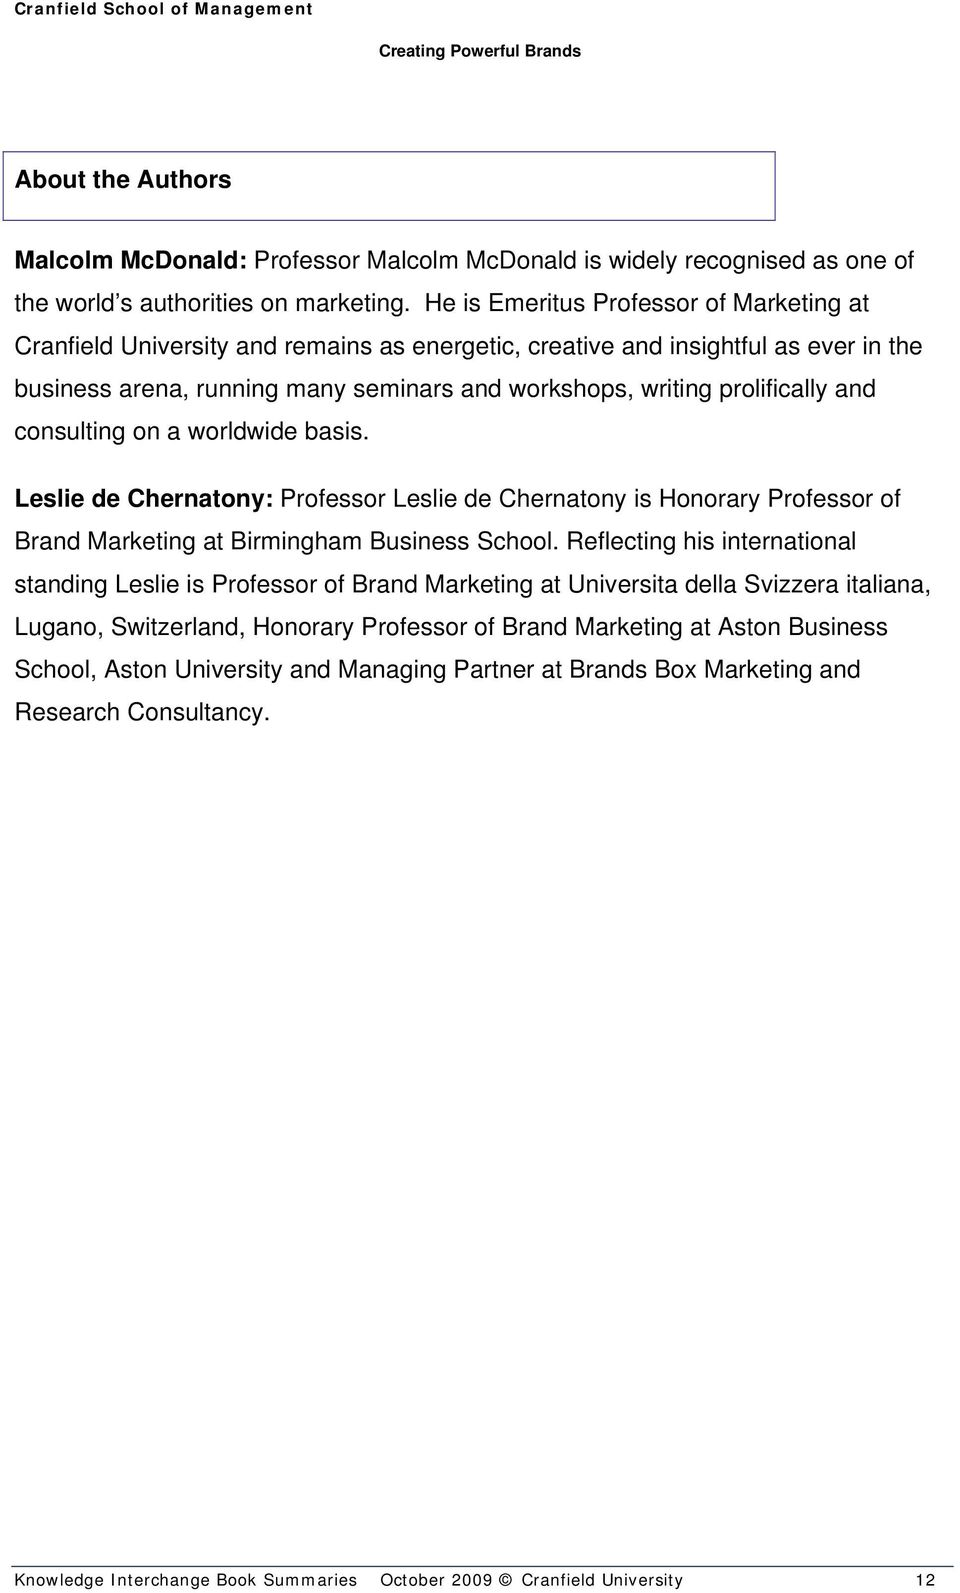 prolifically and consulting on a worldwide basis. Leslie de Chernatony: Professor Leslie de Chernatony is Honorary Professor of Brand Marketing at Birmingham Business School.